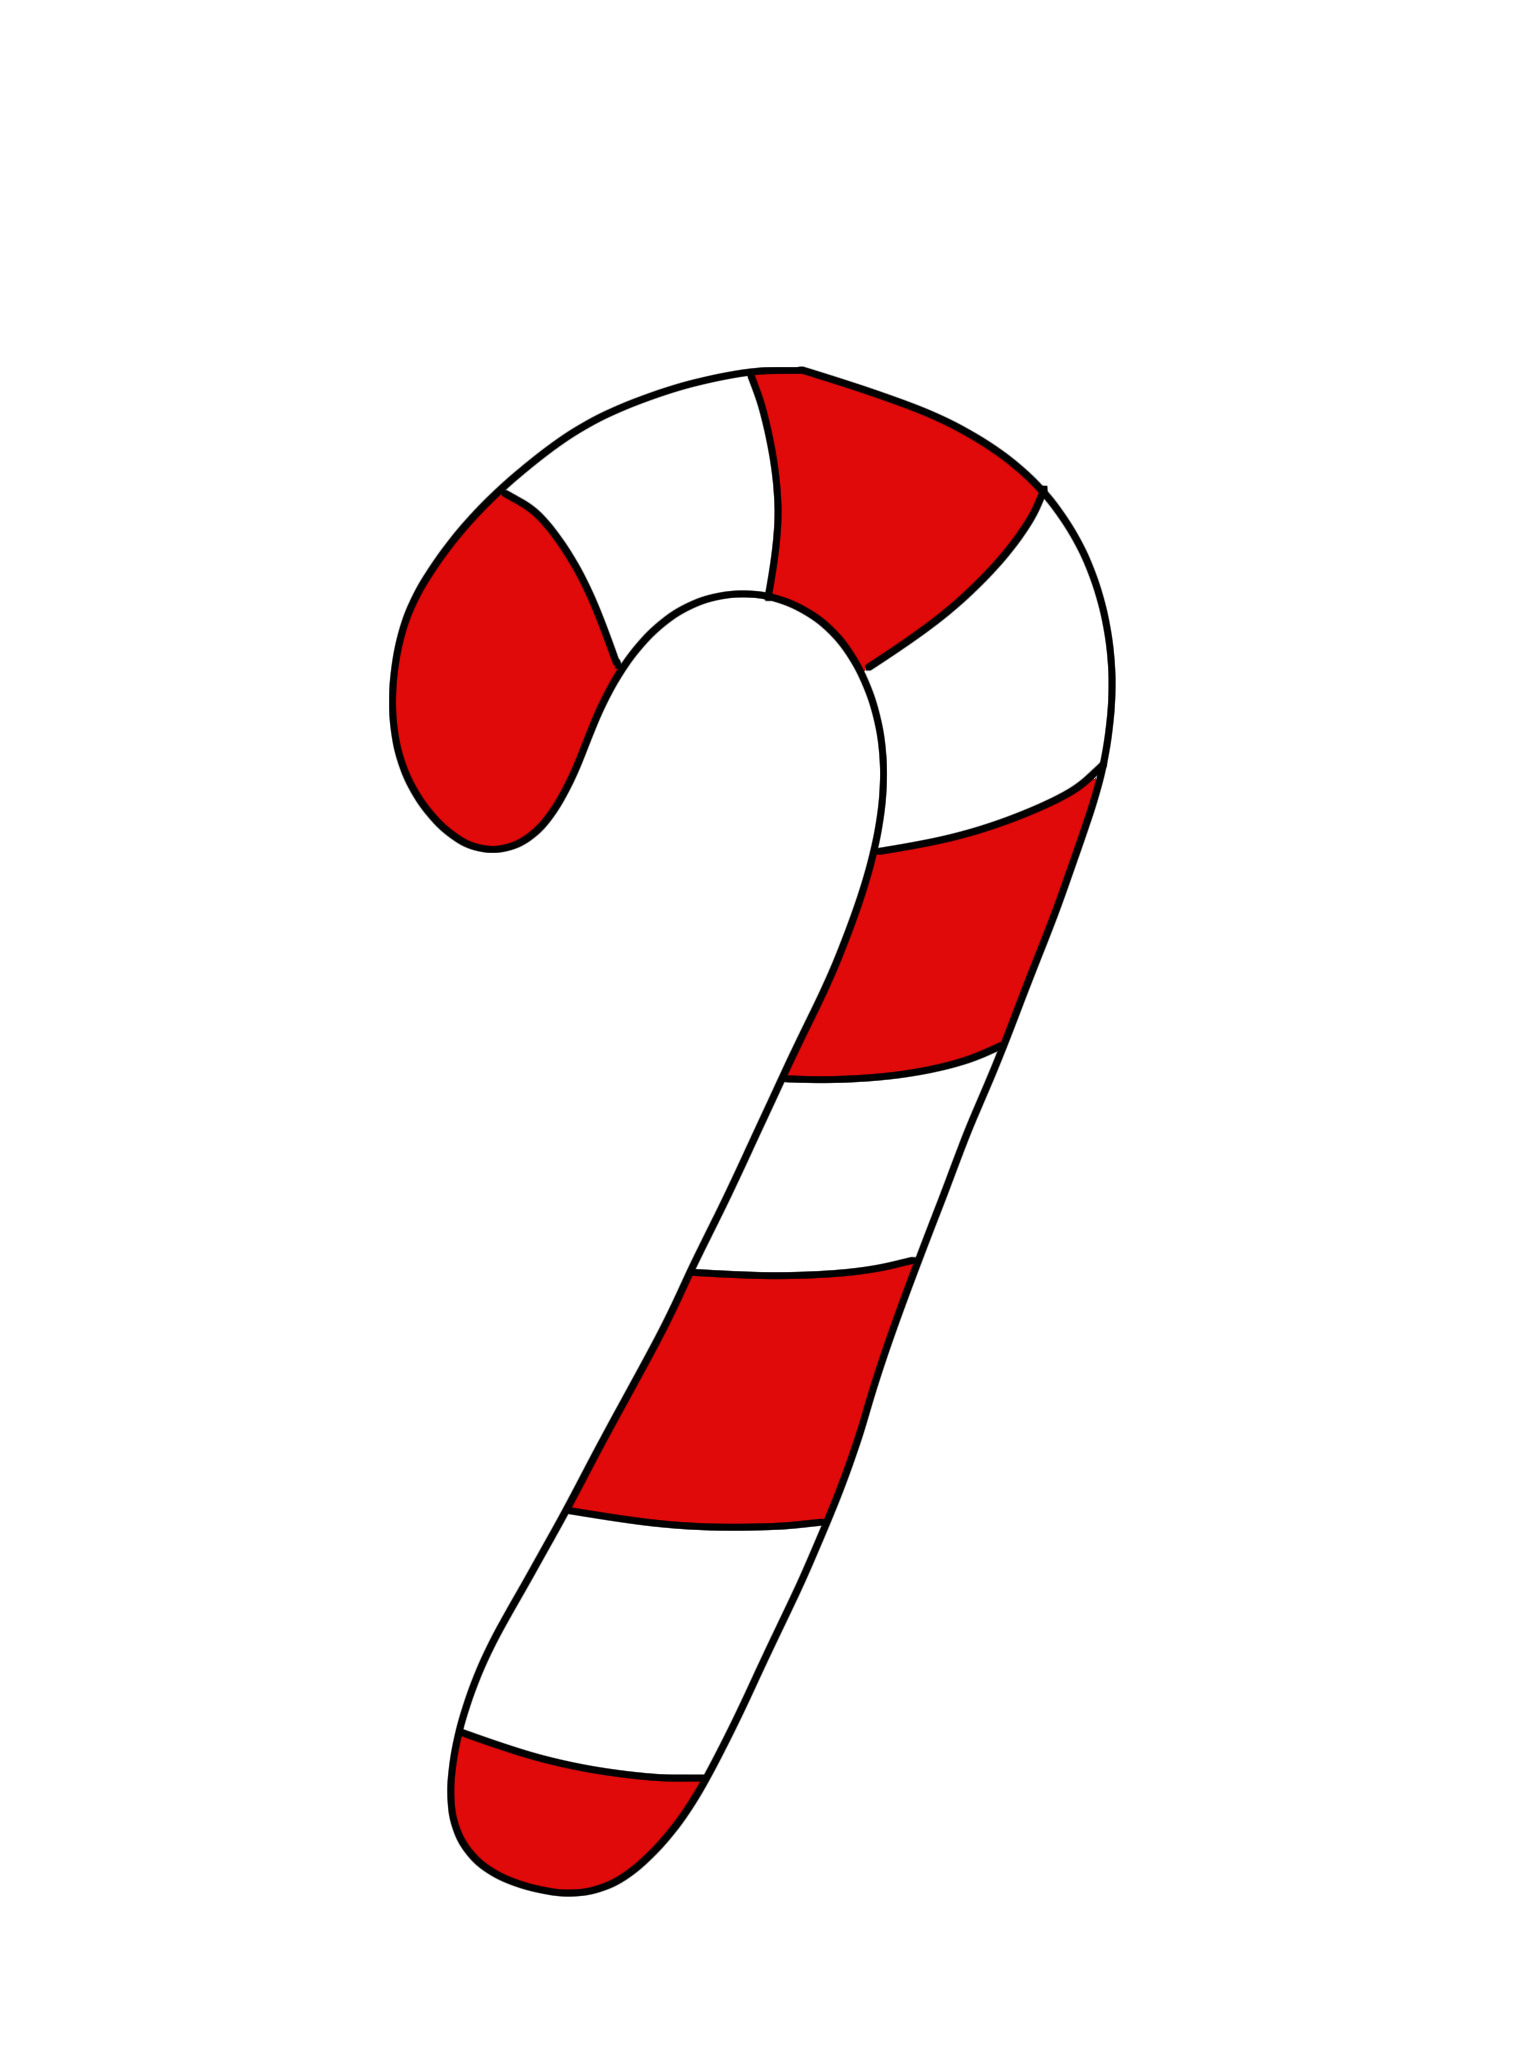 Free Pictures Of Candy Canes, Download Free Clip Art, Free.